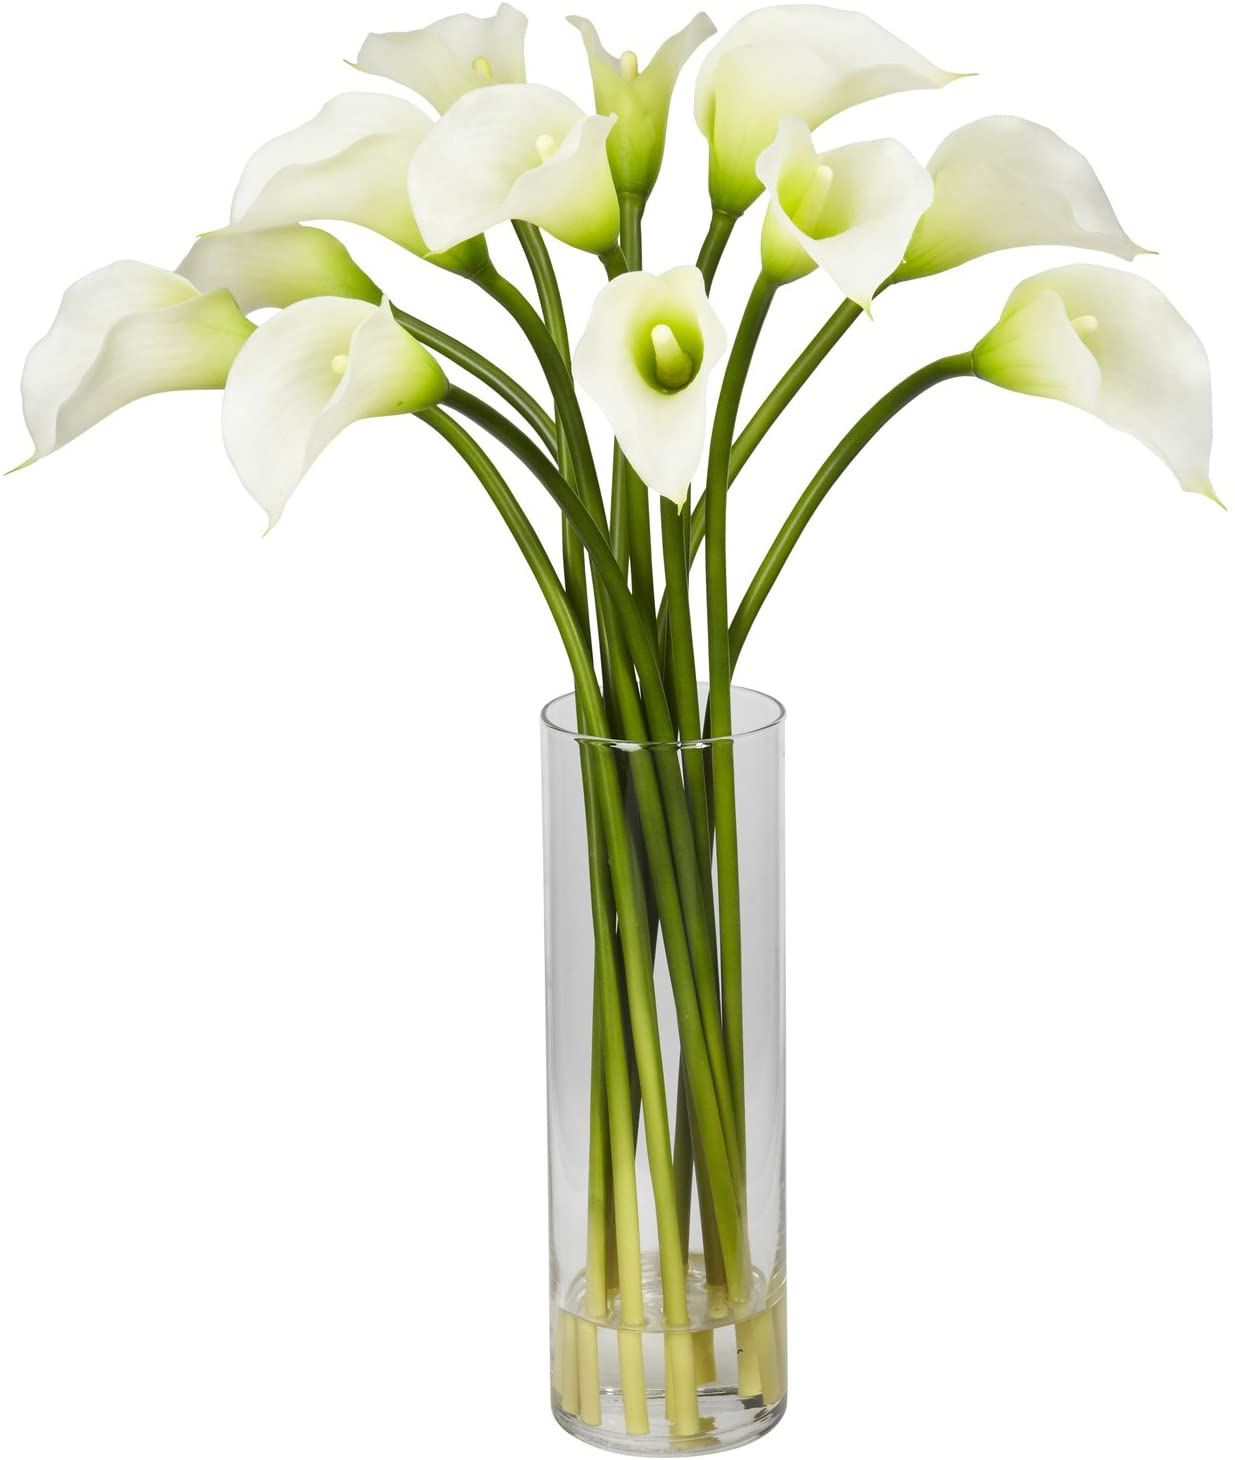 Nearly Natural 1187-CR Mini Calla Lily Silk Flower Arrangement, Cream, 15 In. W x 15 In. D x 20 In. H